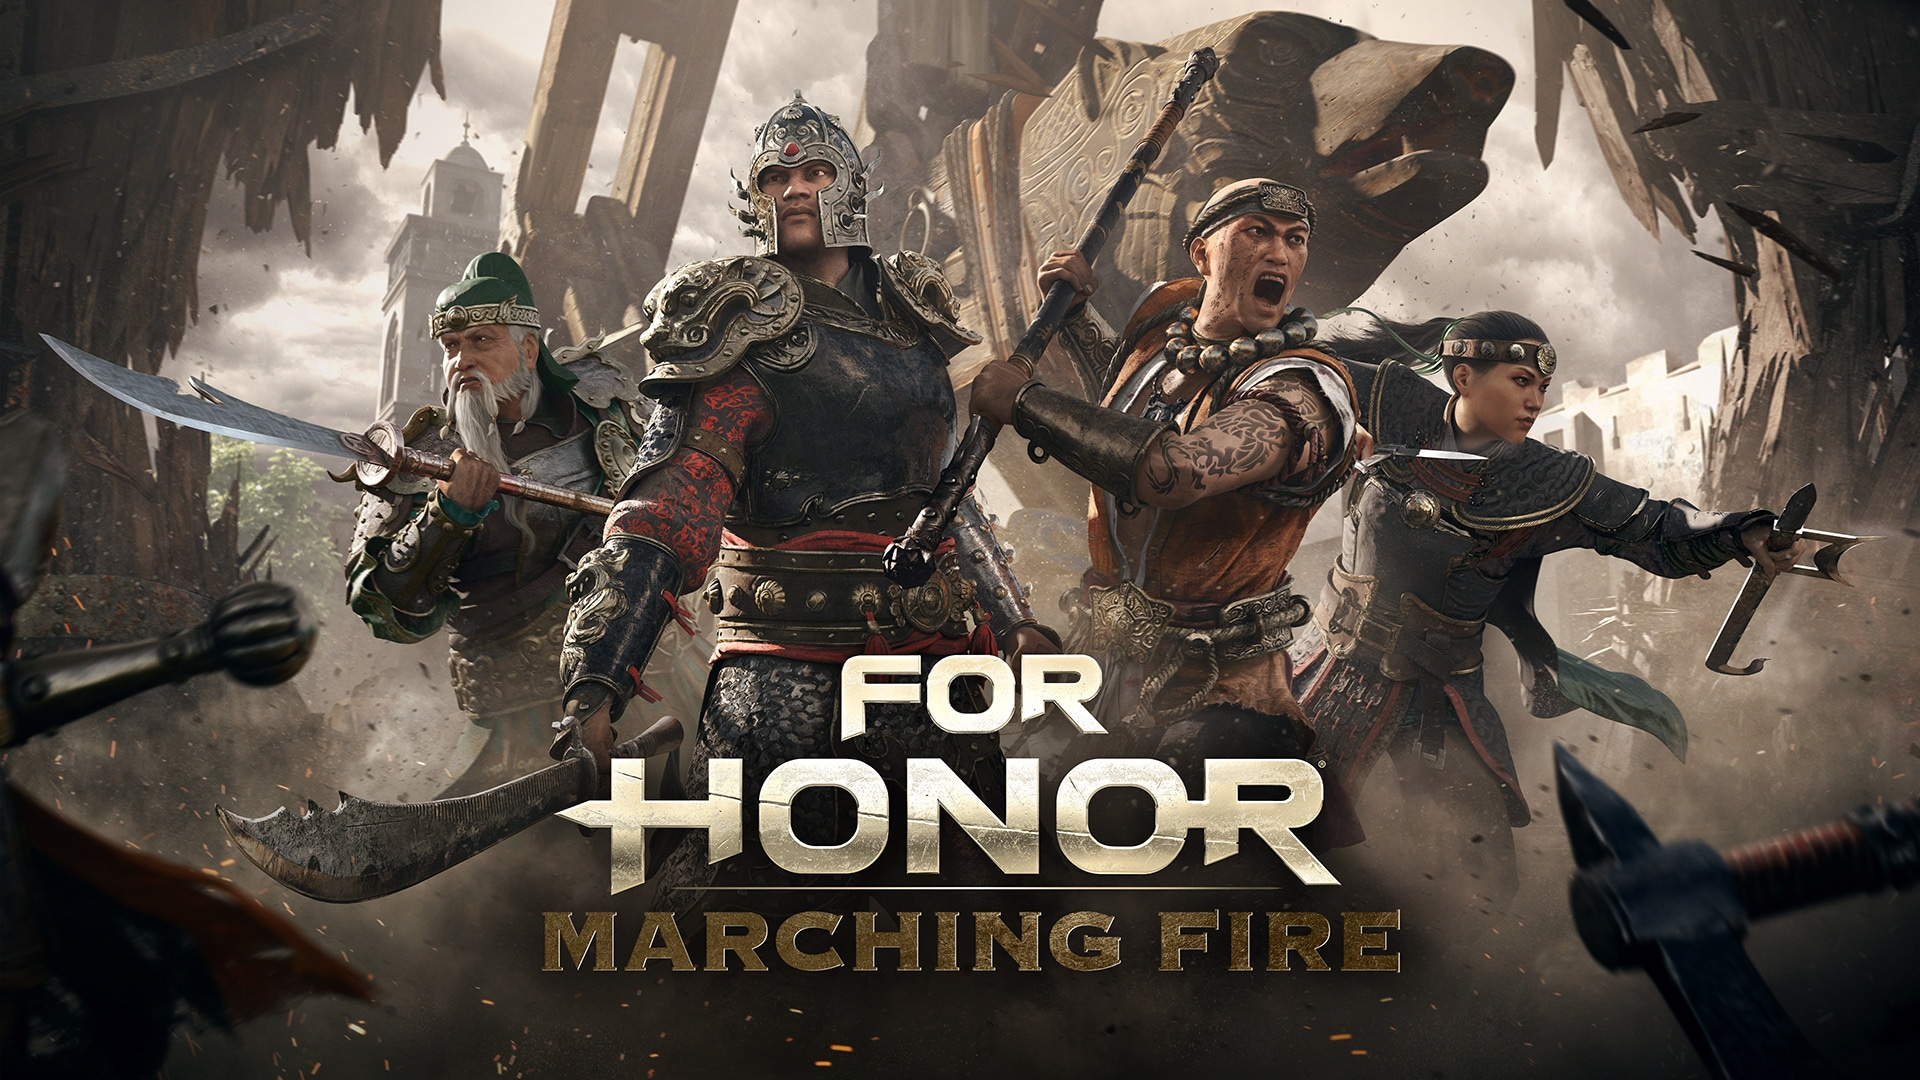 Matchmaking penalty in for honor